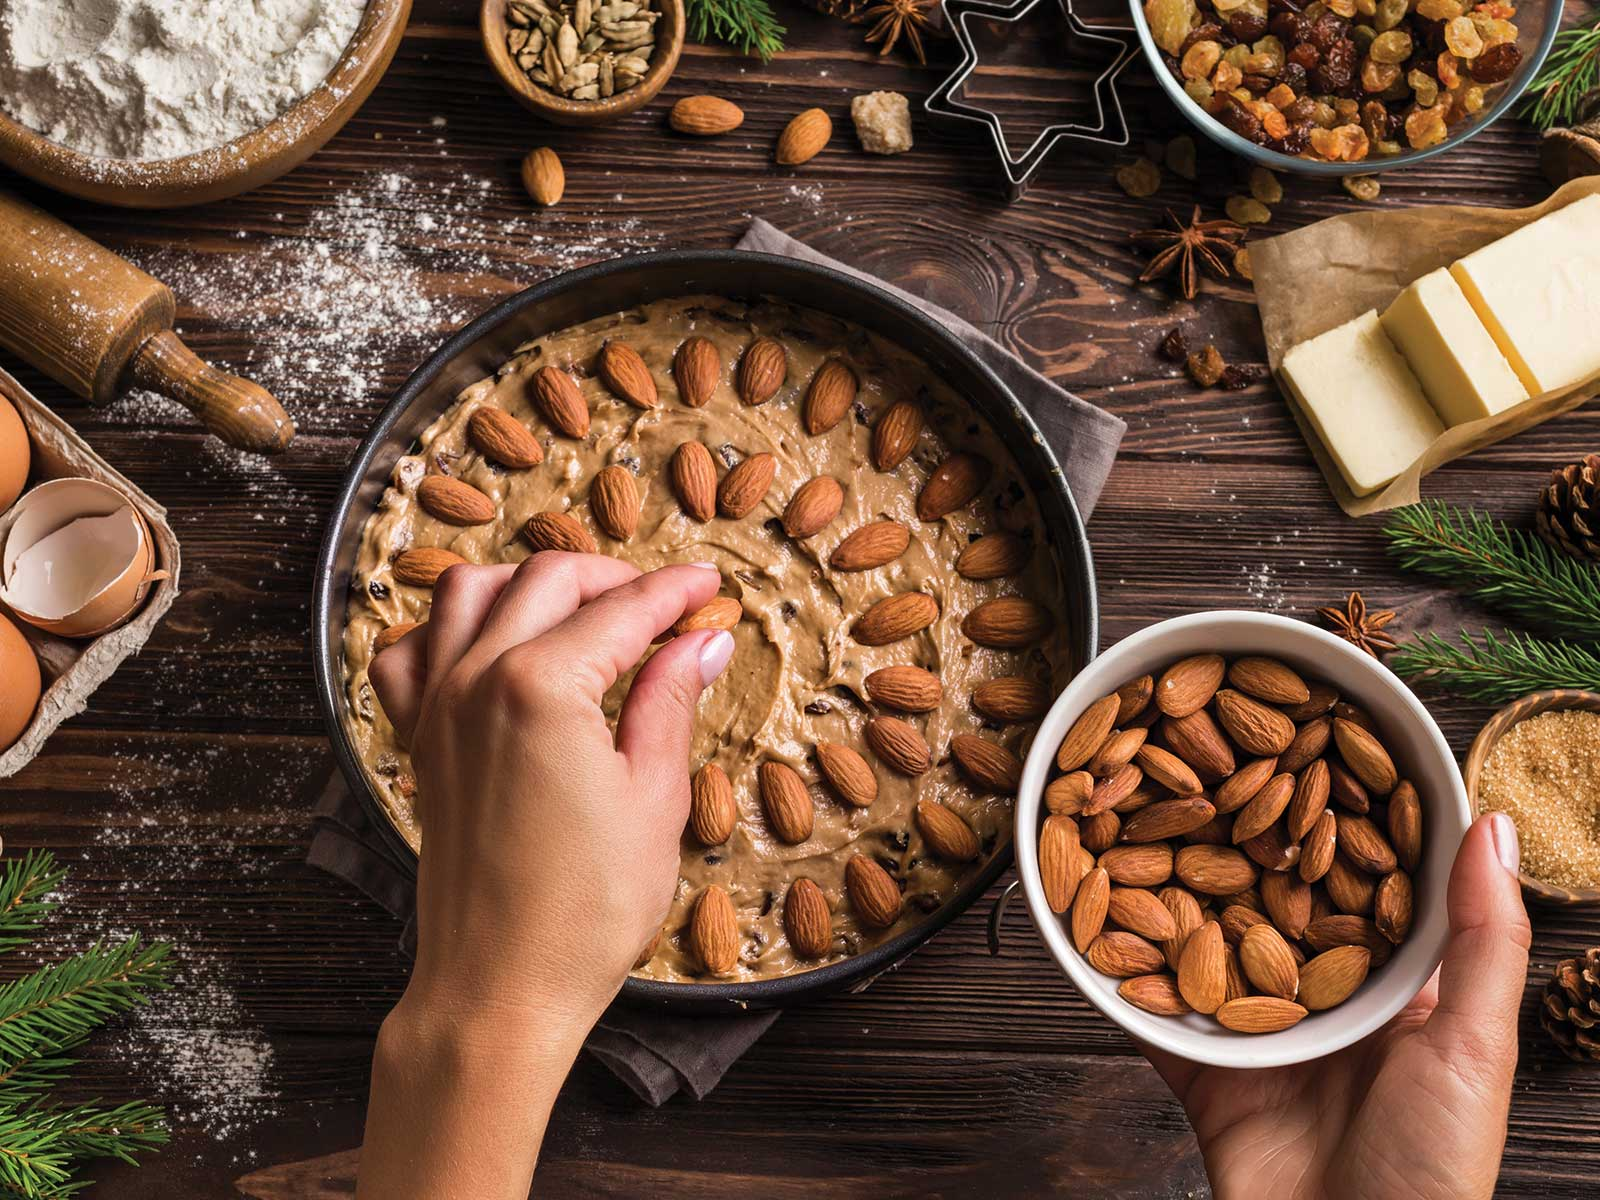 Holiday baking with almonds